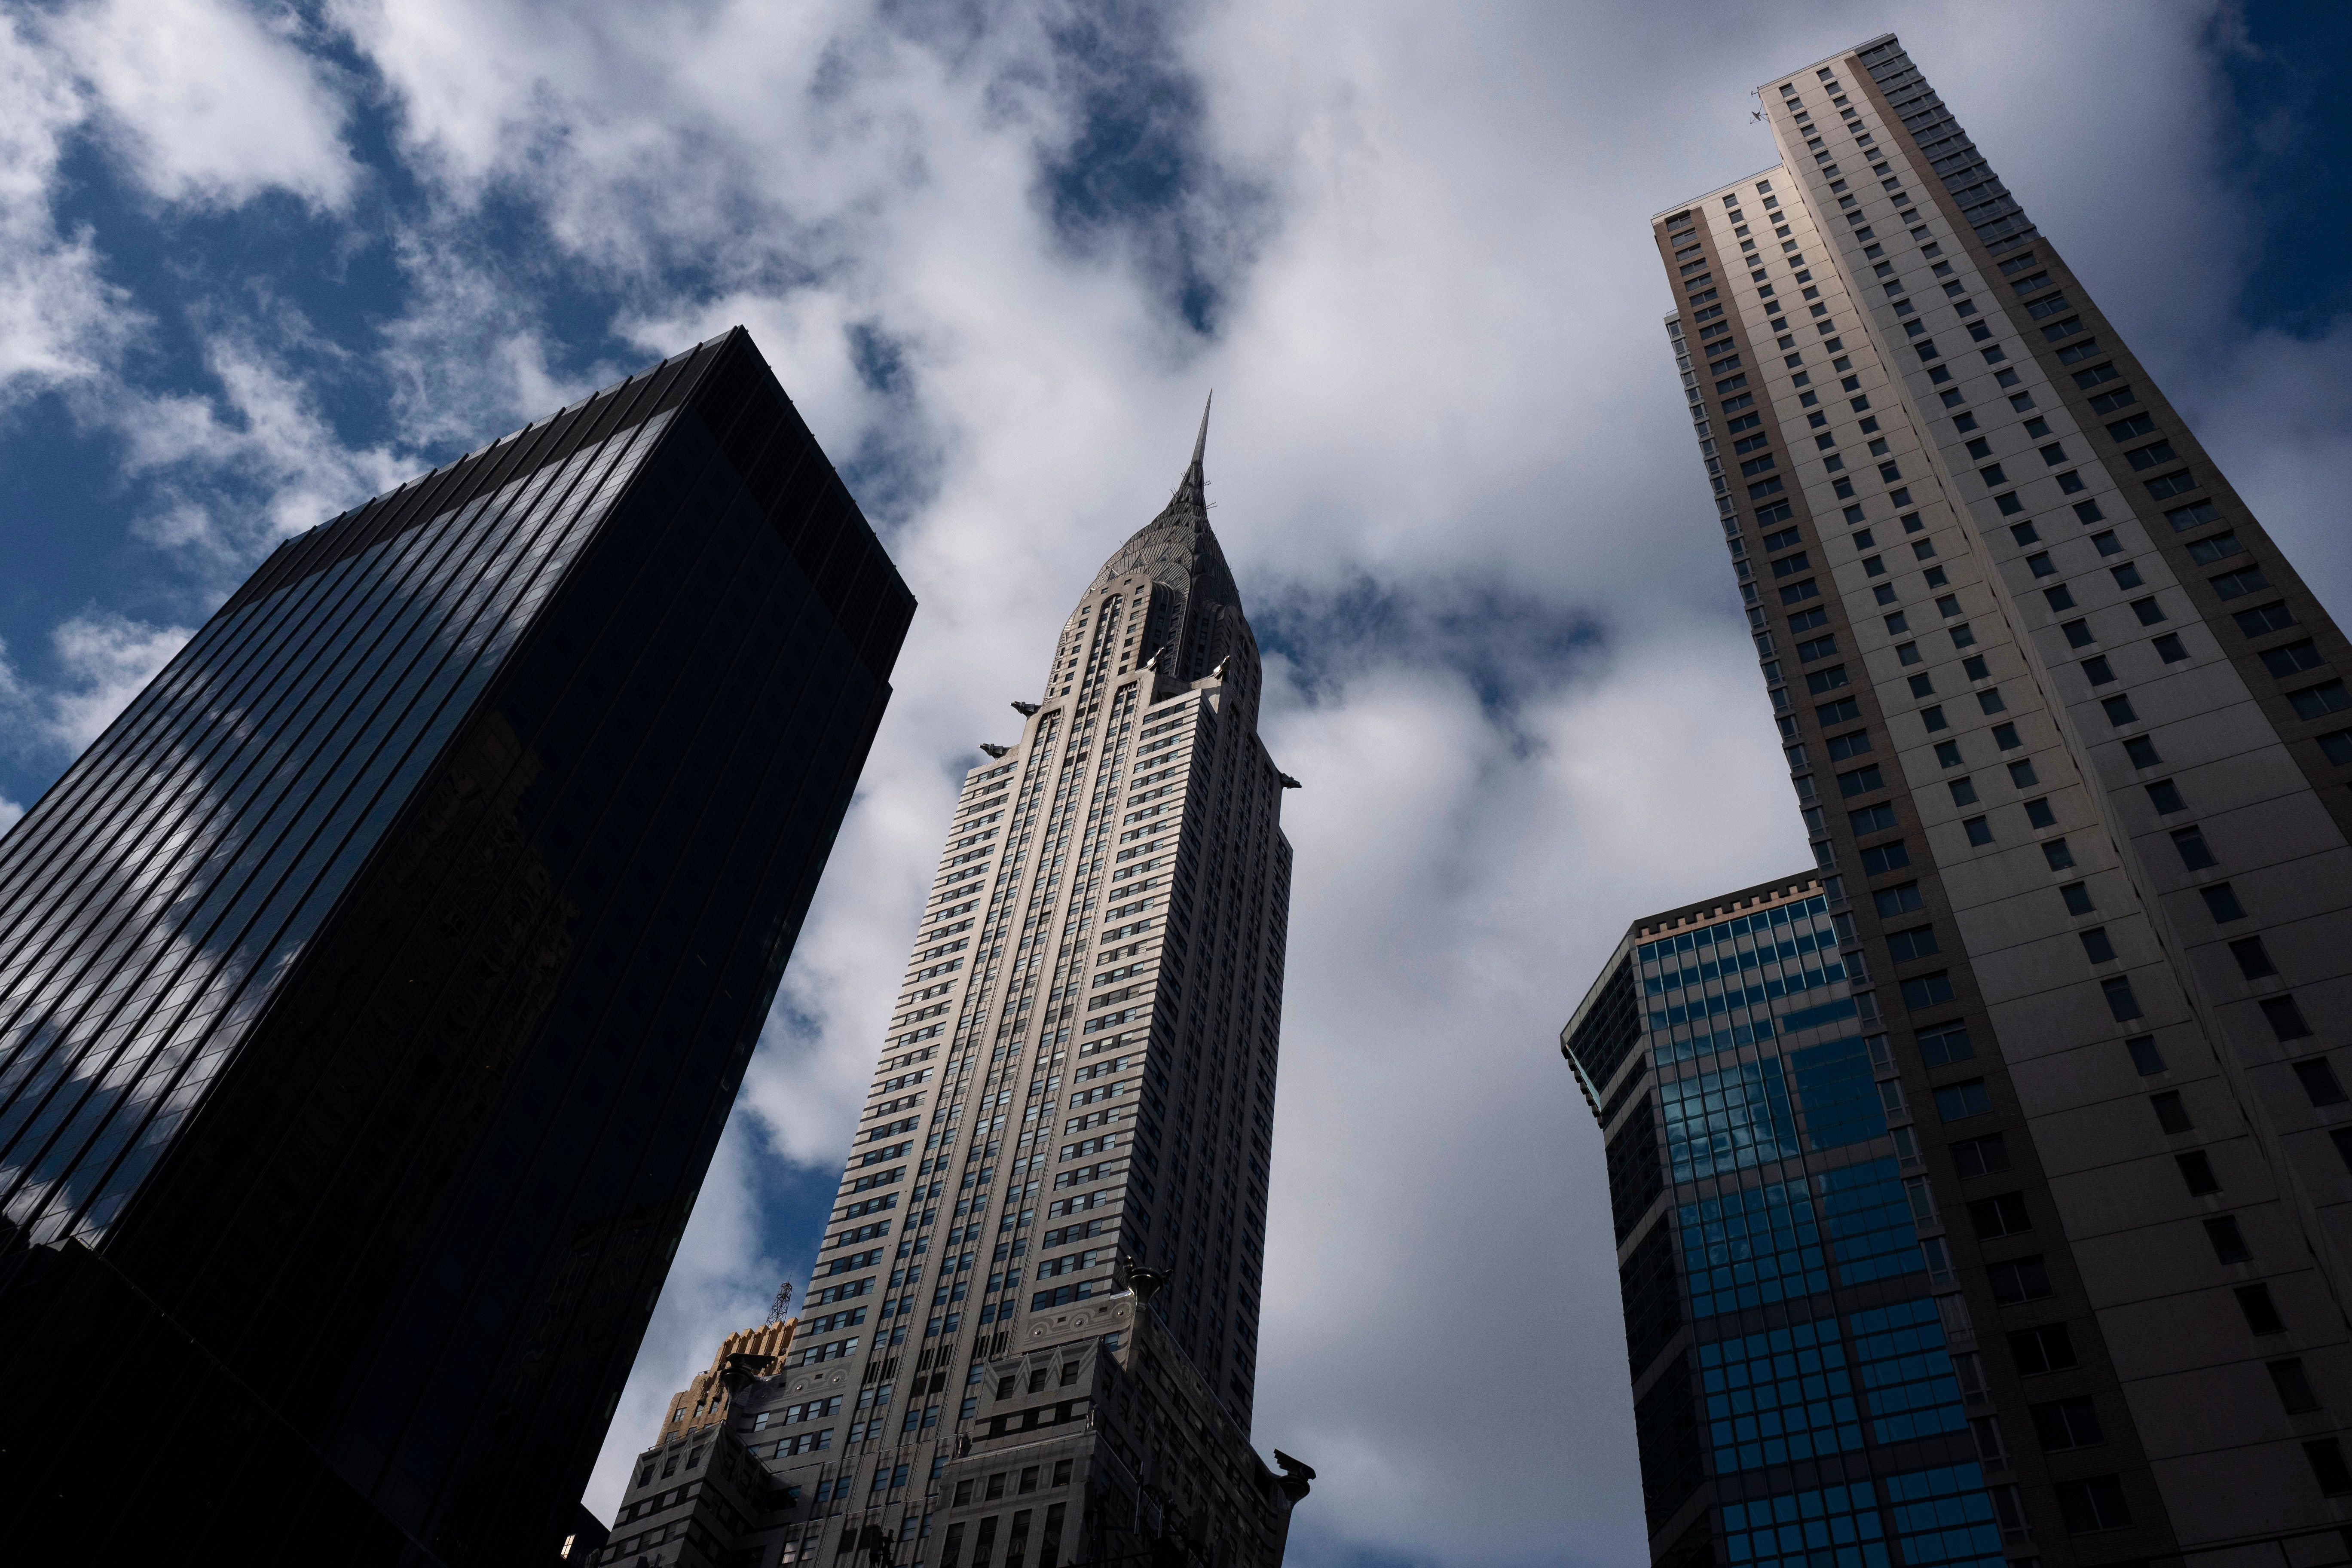 New York's Iconic Chrysler Building Is Sold For Bargain Price Of $150